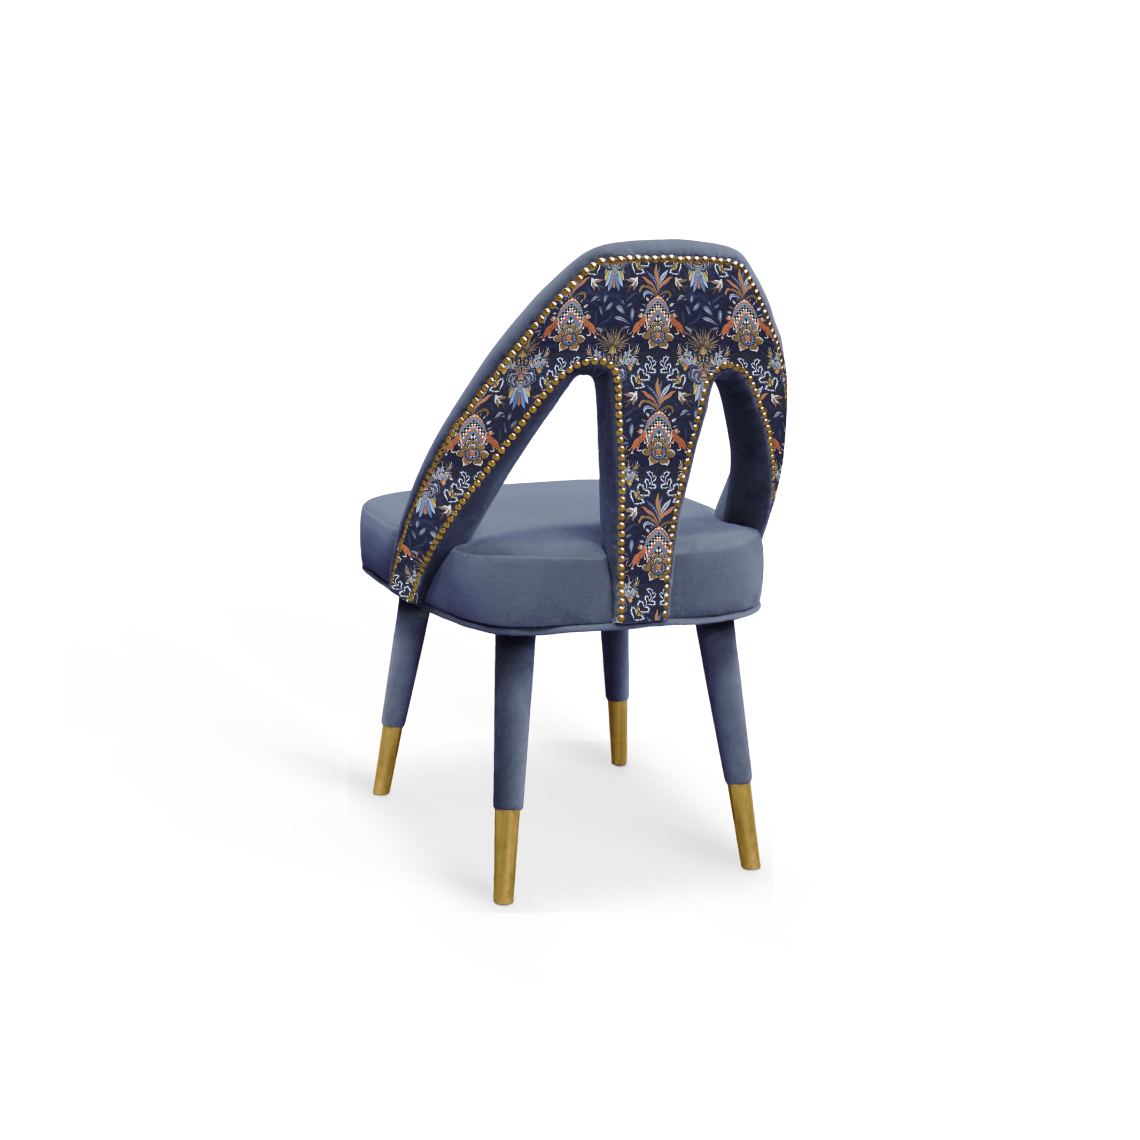 Caron Dining Chair designed by Ottiu